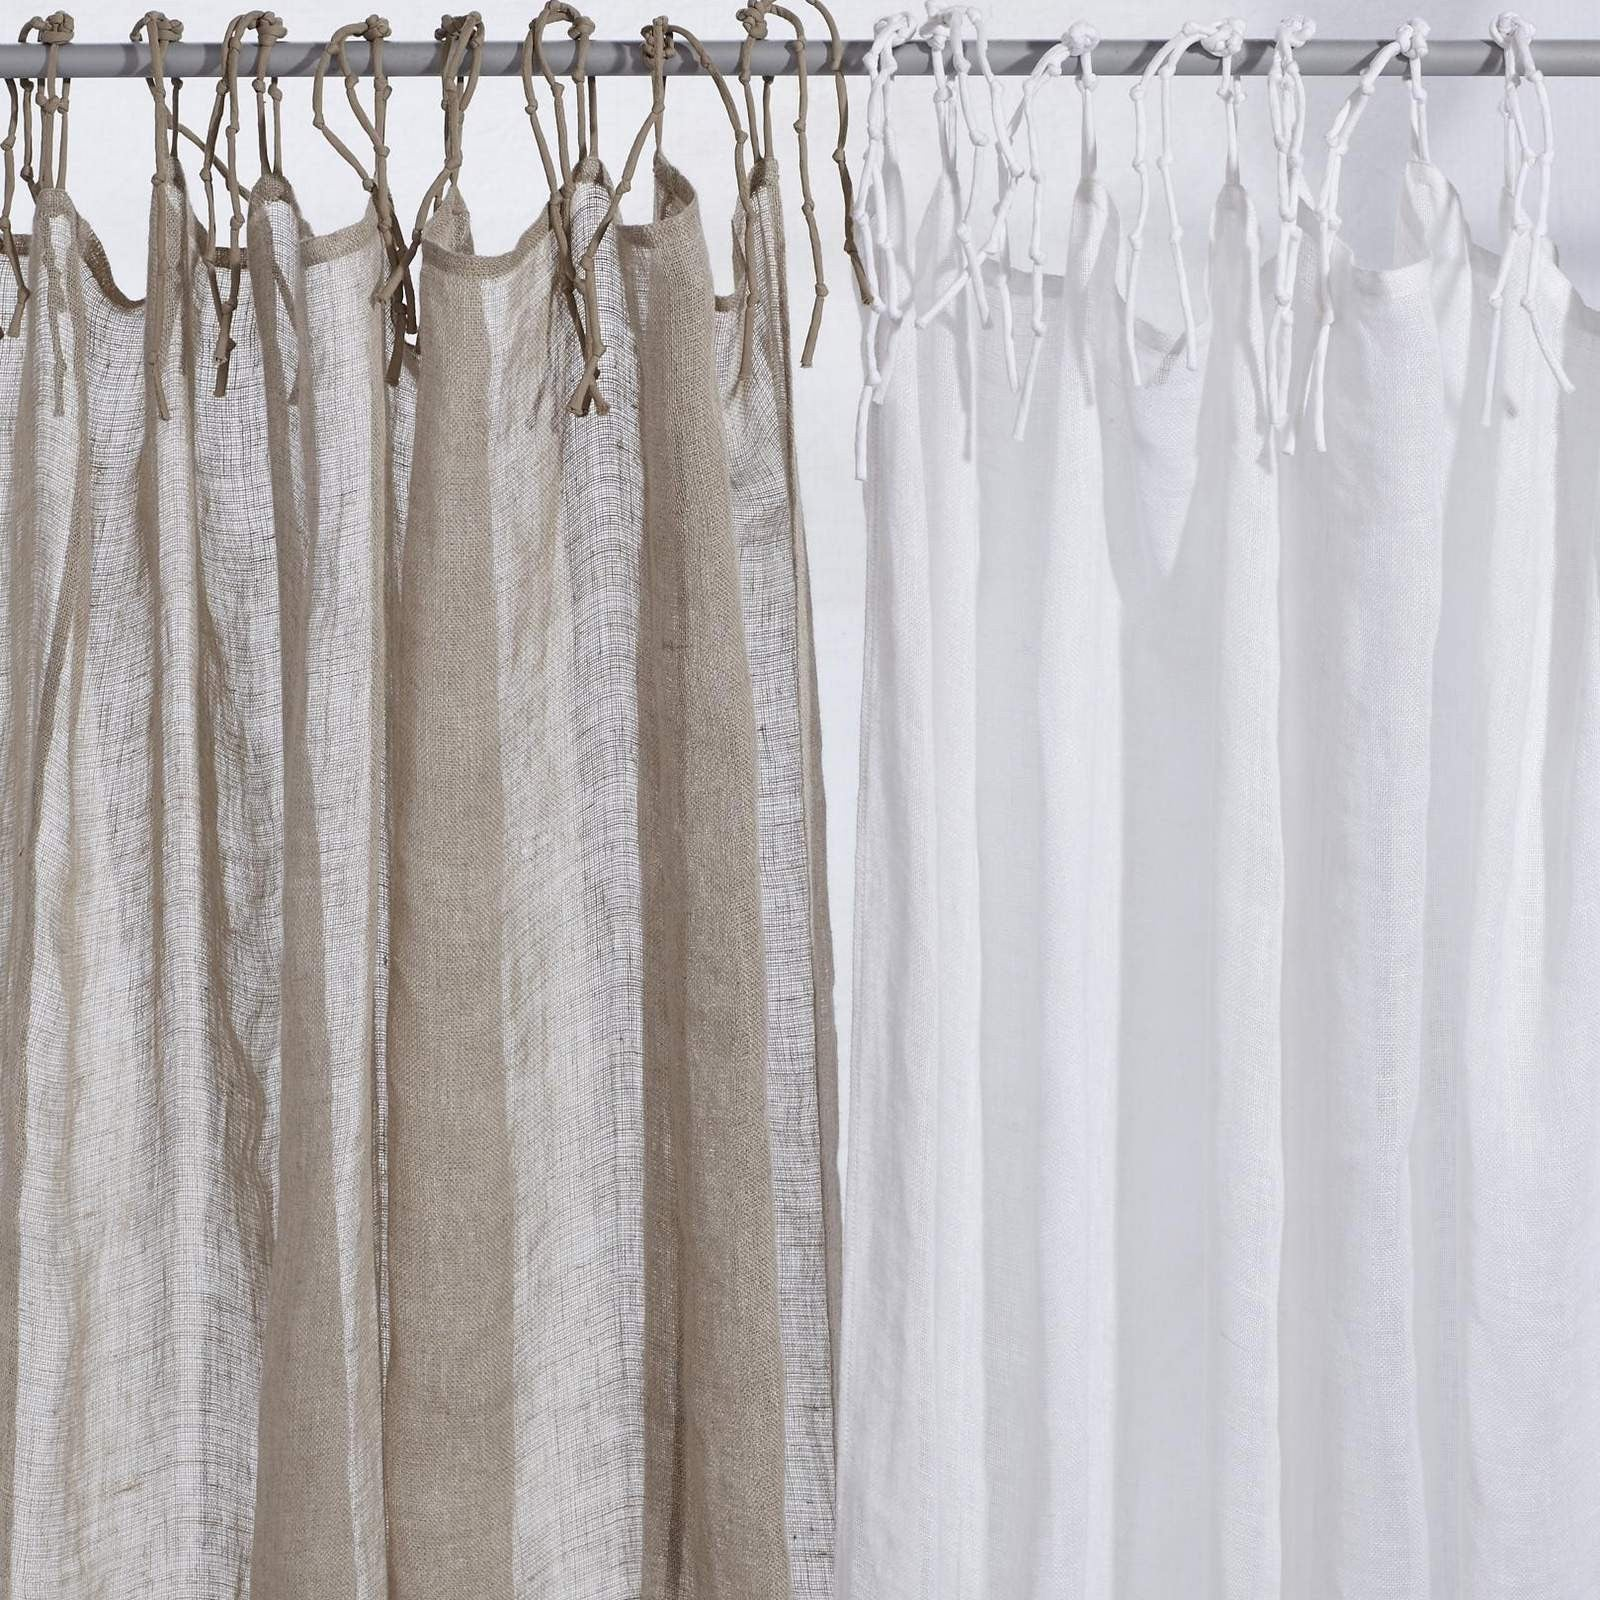 Natural or White Linen Curtains